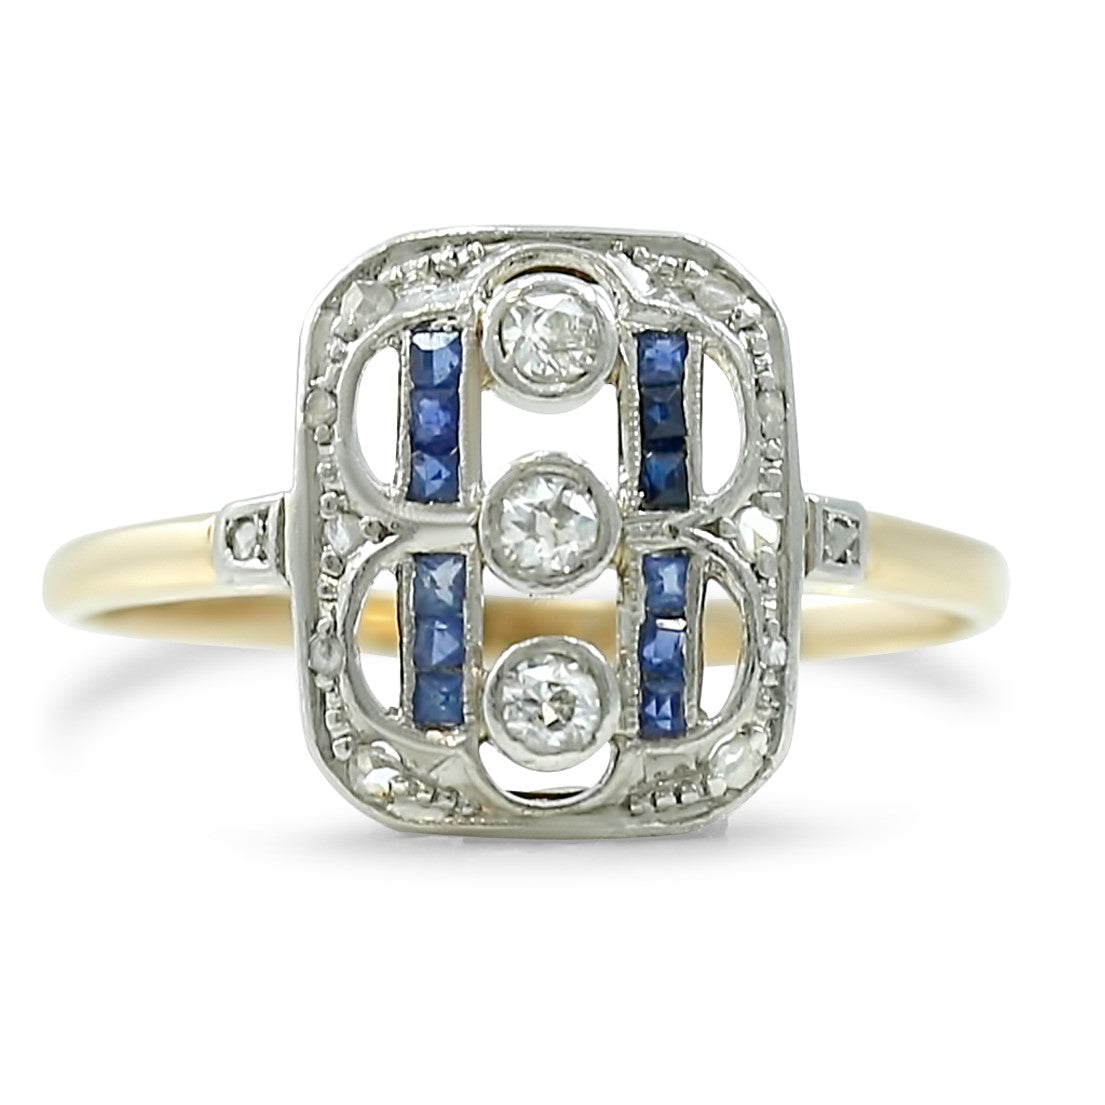 art deco antique engagement ring with baguette sapphires and bezel set round diamonds unique shape and set in platinum and 14k yellow gold